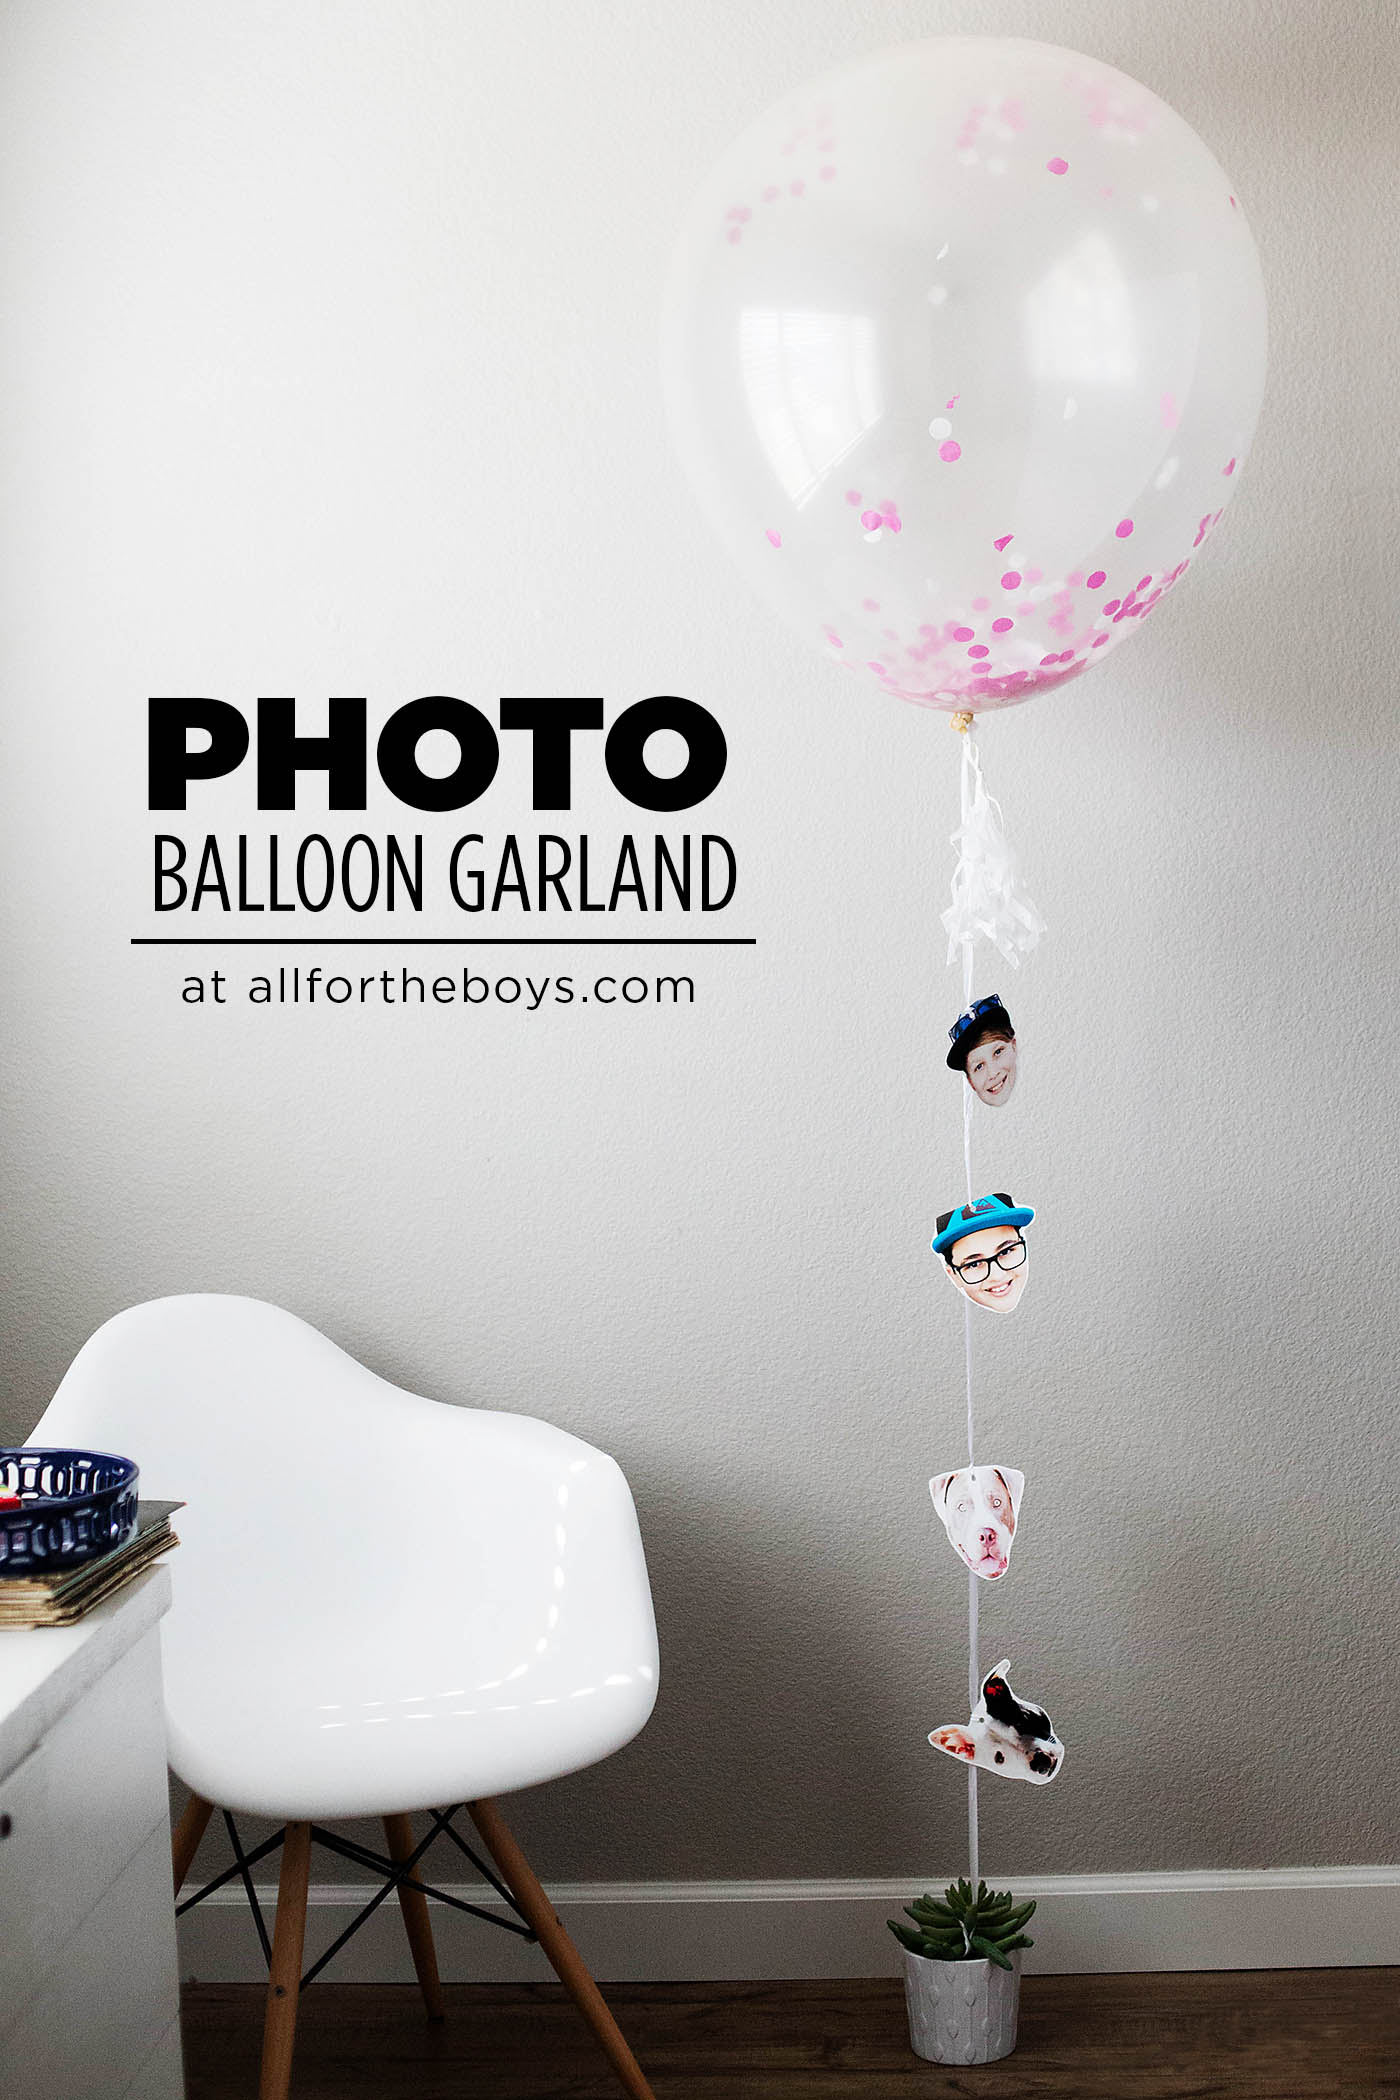 DIY photo balloon garland - SUCH a cute gift idea!